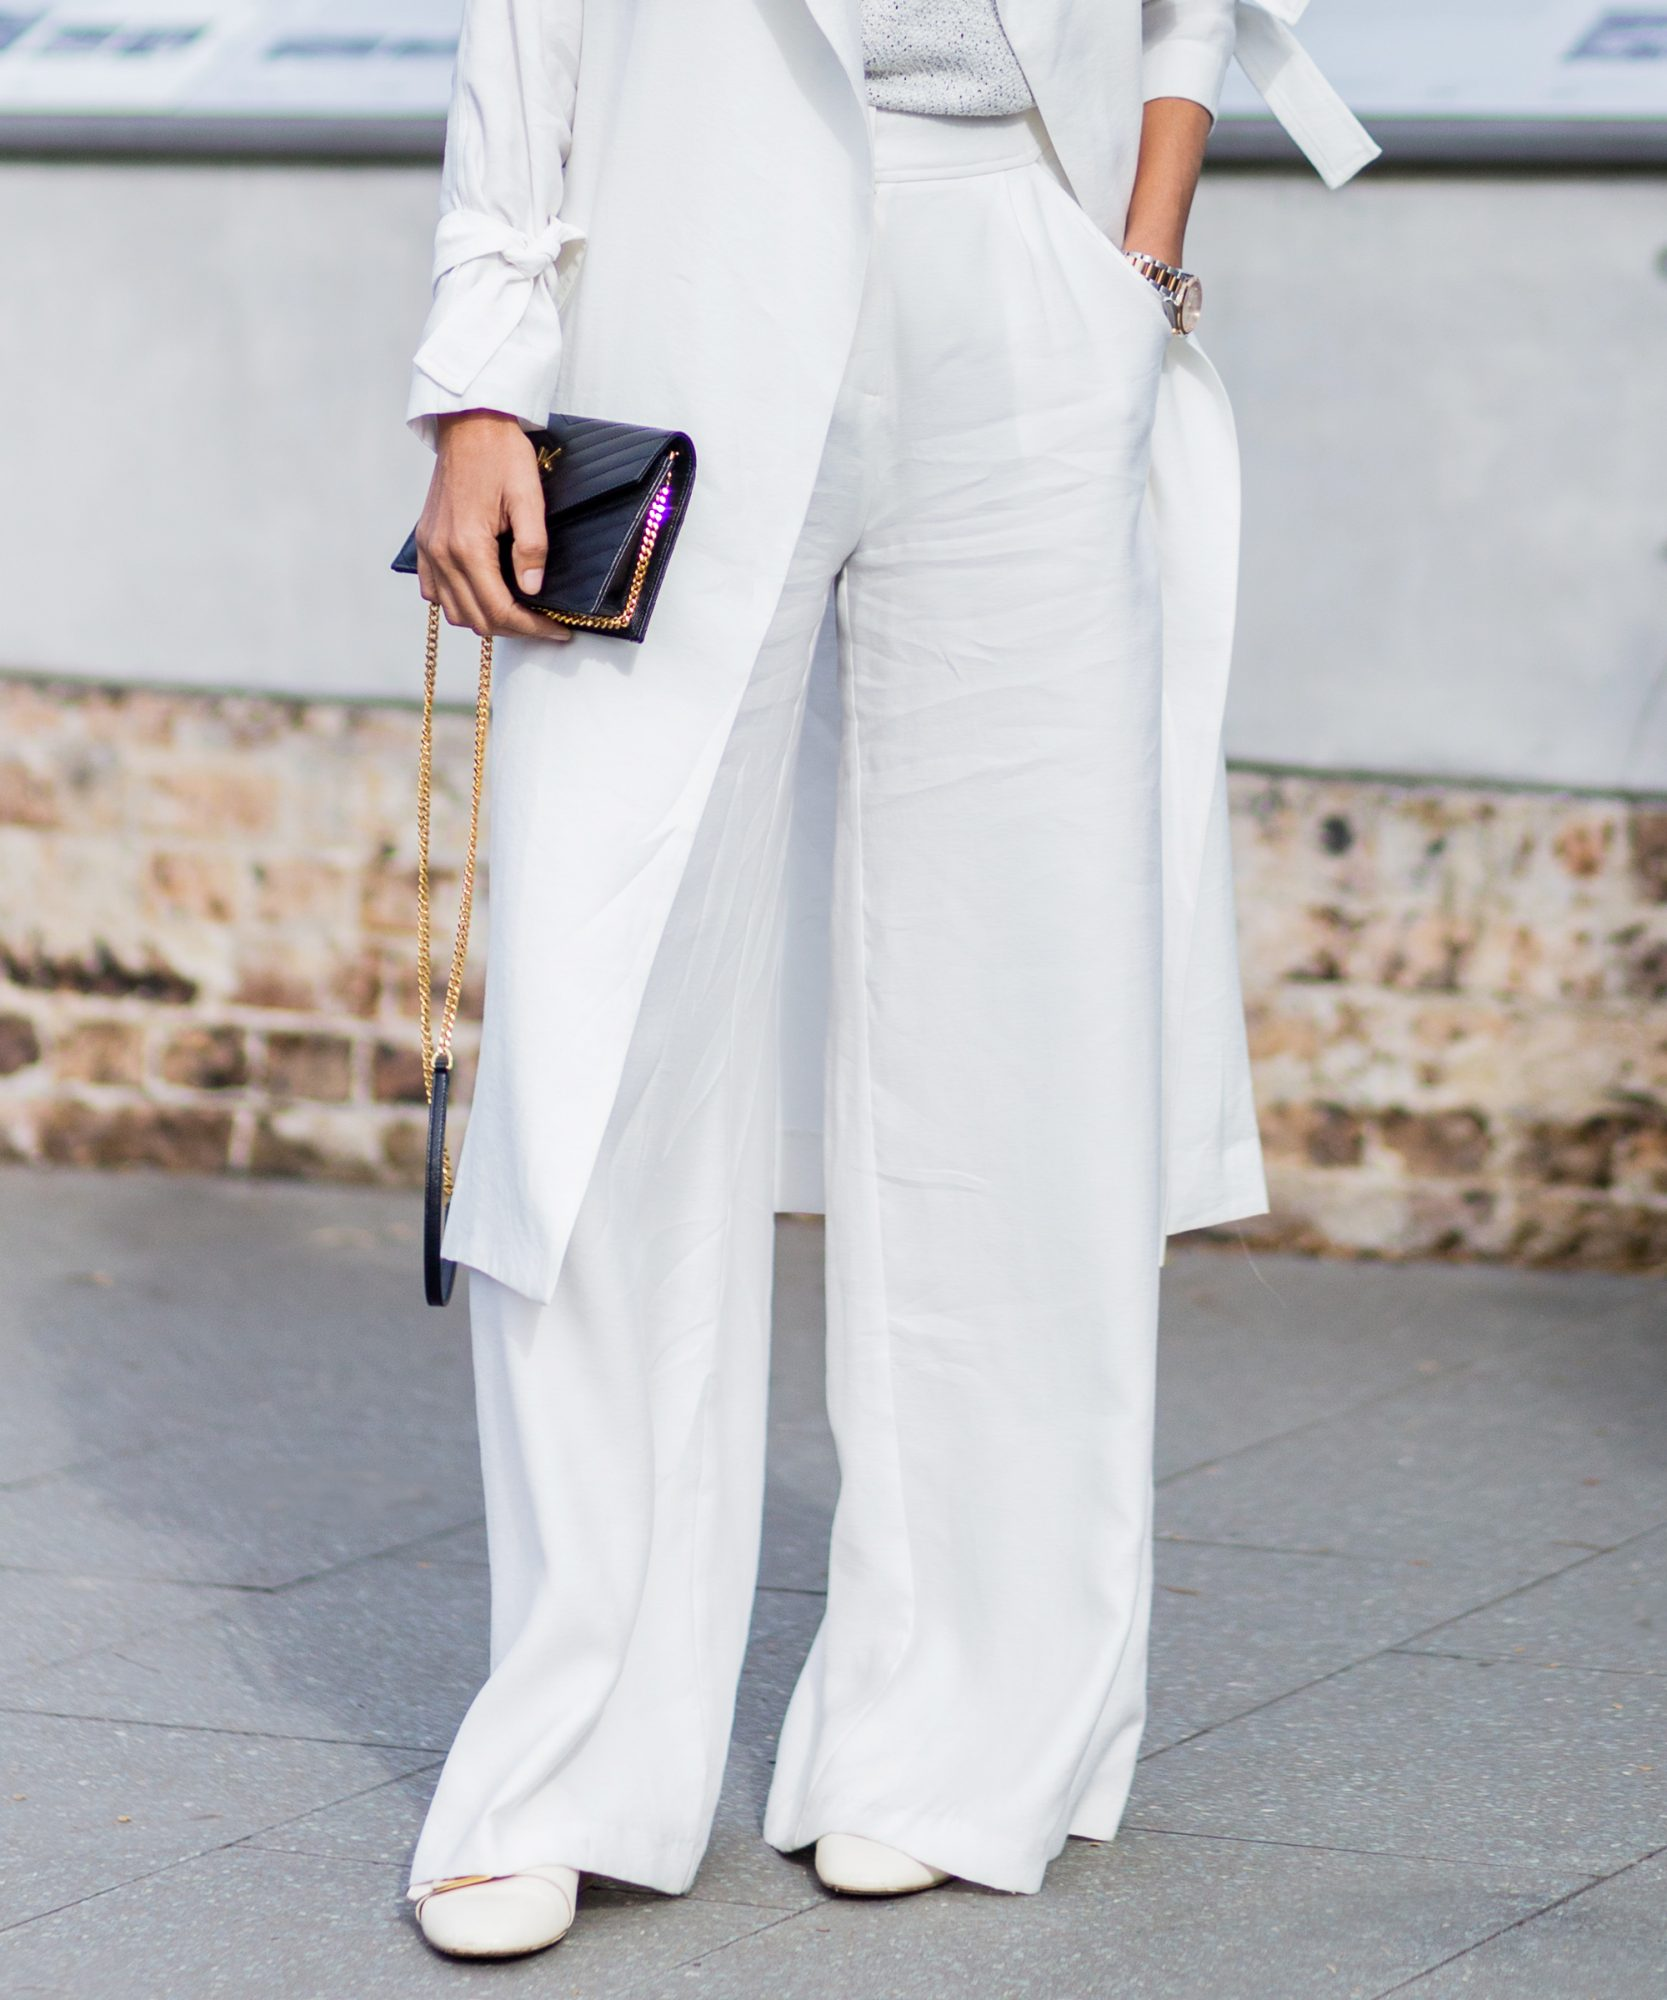 46a7f916320 7 Ways To Wear Wide-Leg Pants With Flats